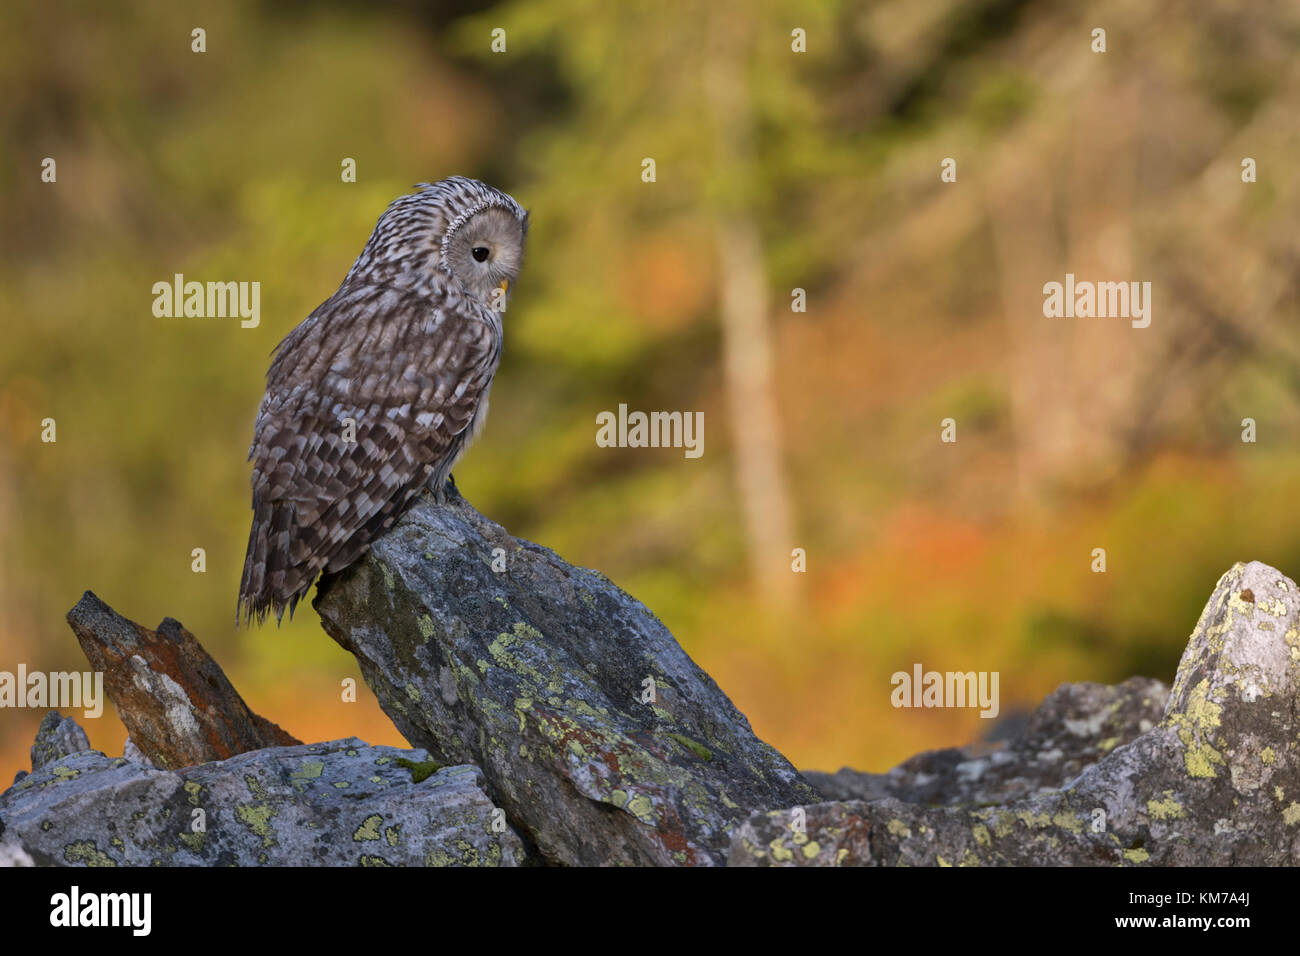 Ural Owl ( Strix uralensis ) perched on a rock, early morning, first sunlight shines on autumnal coloured woods - Stock Image